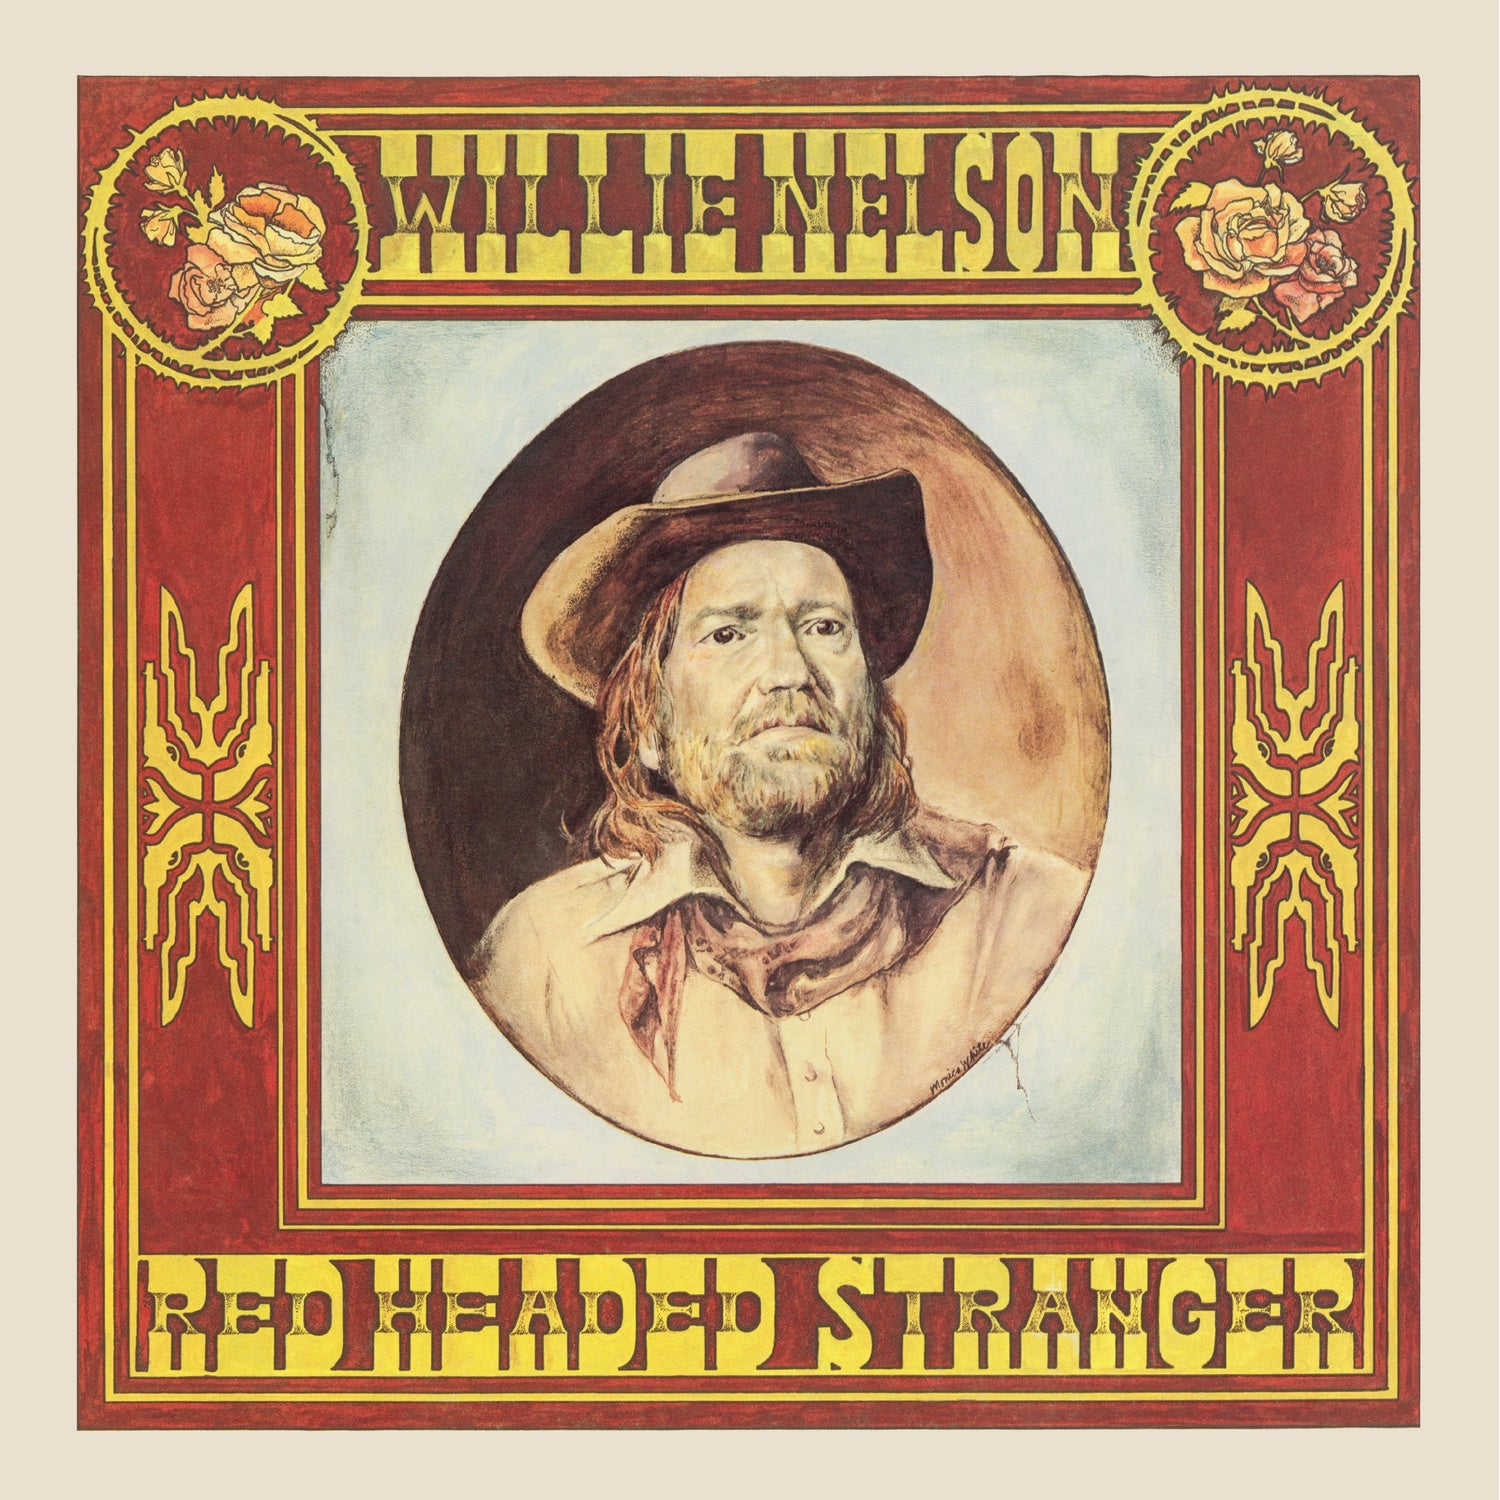 Willie Nelson ‎– Red Headed Stranger (1975) - New Vinyl LP Record 2019 We Are Vinyl Reissue - Country